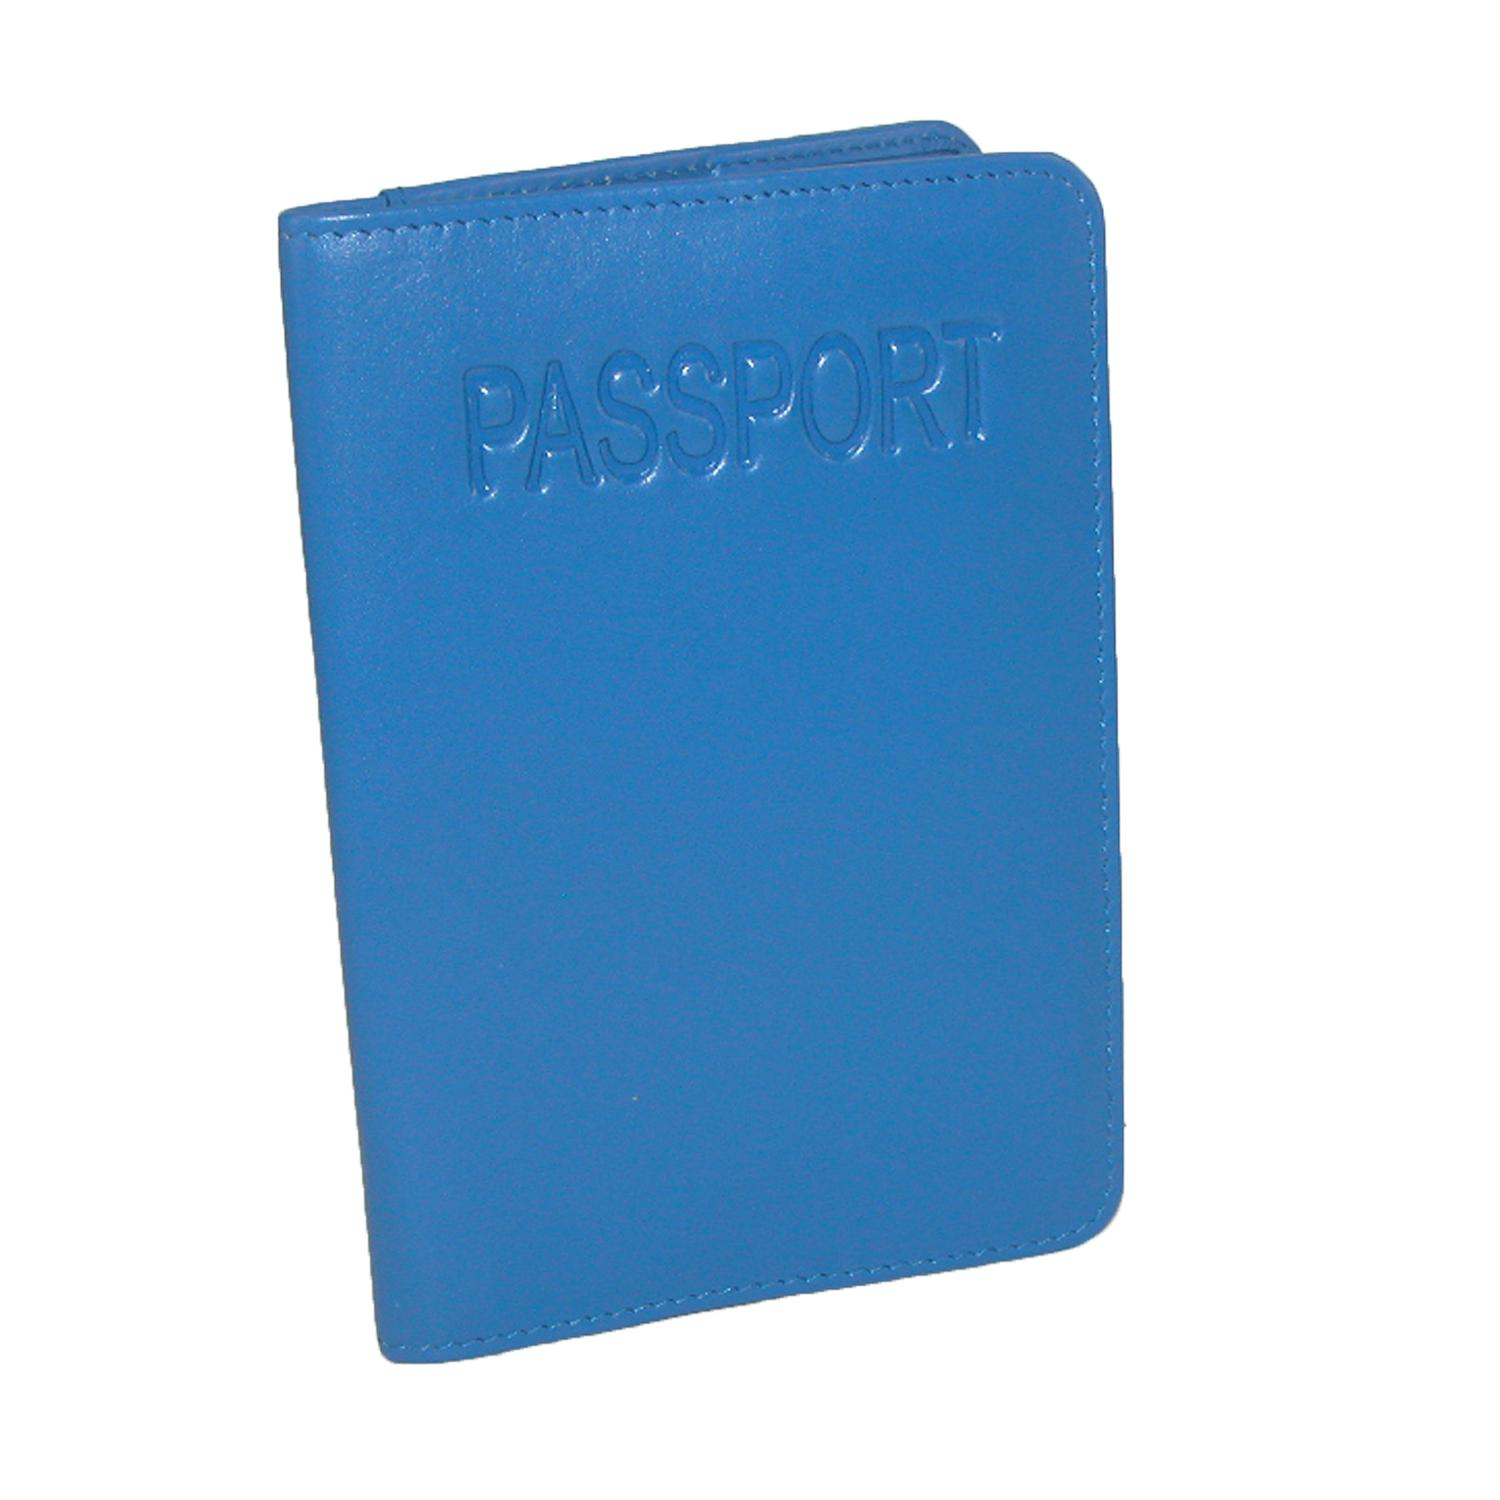 Cobalt CTM Leather Passport Cover with Pocket